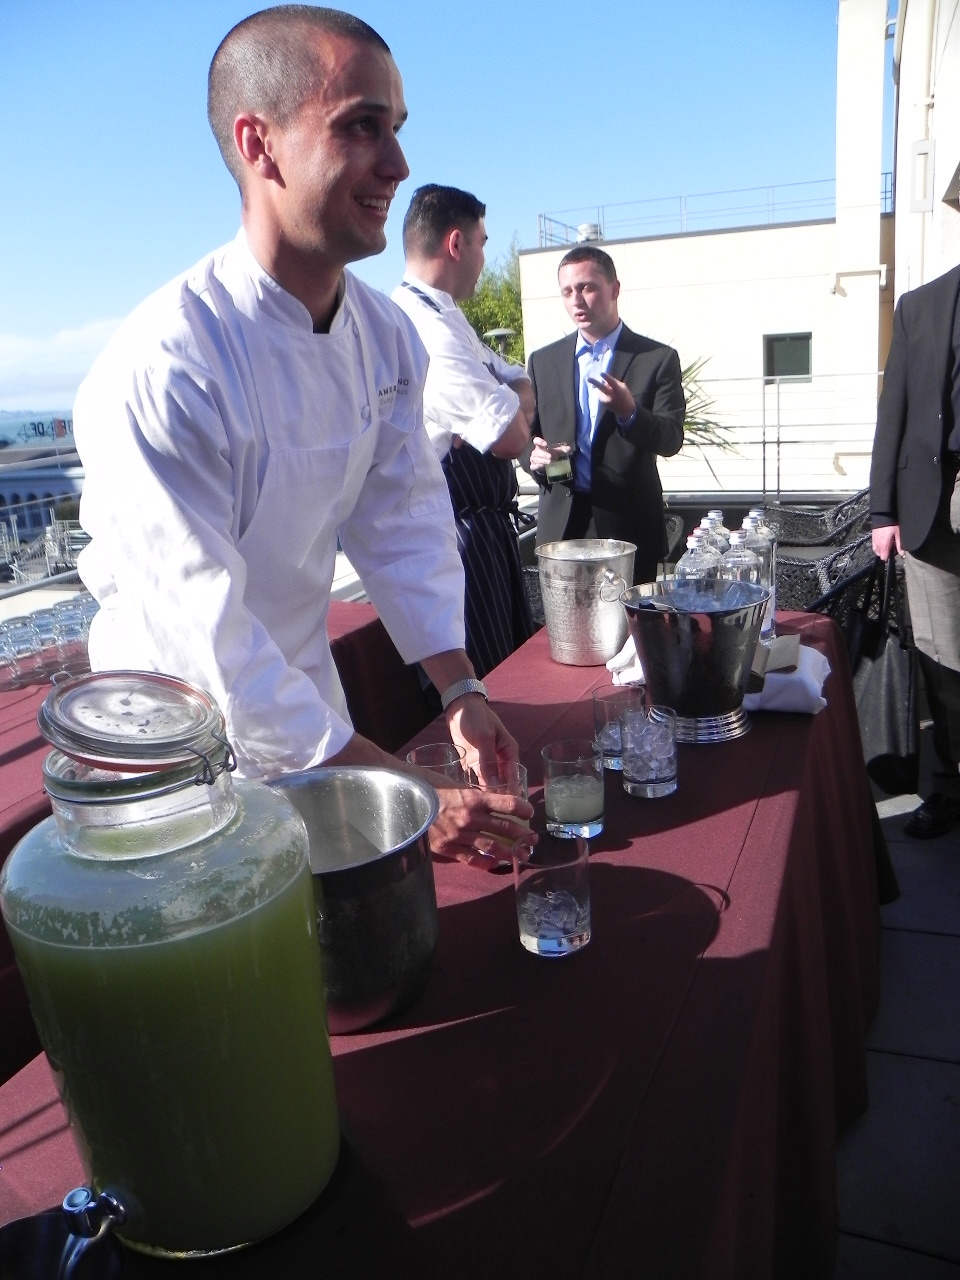 Stewart serving refreshing glasses of cucumber gin sours on a beautiful San Francisco evening.